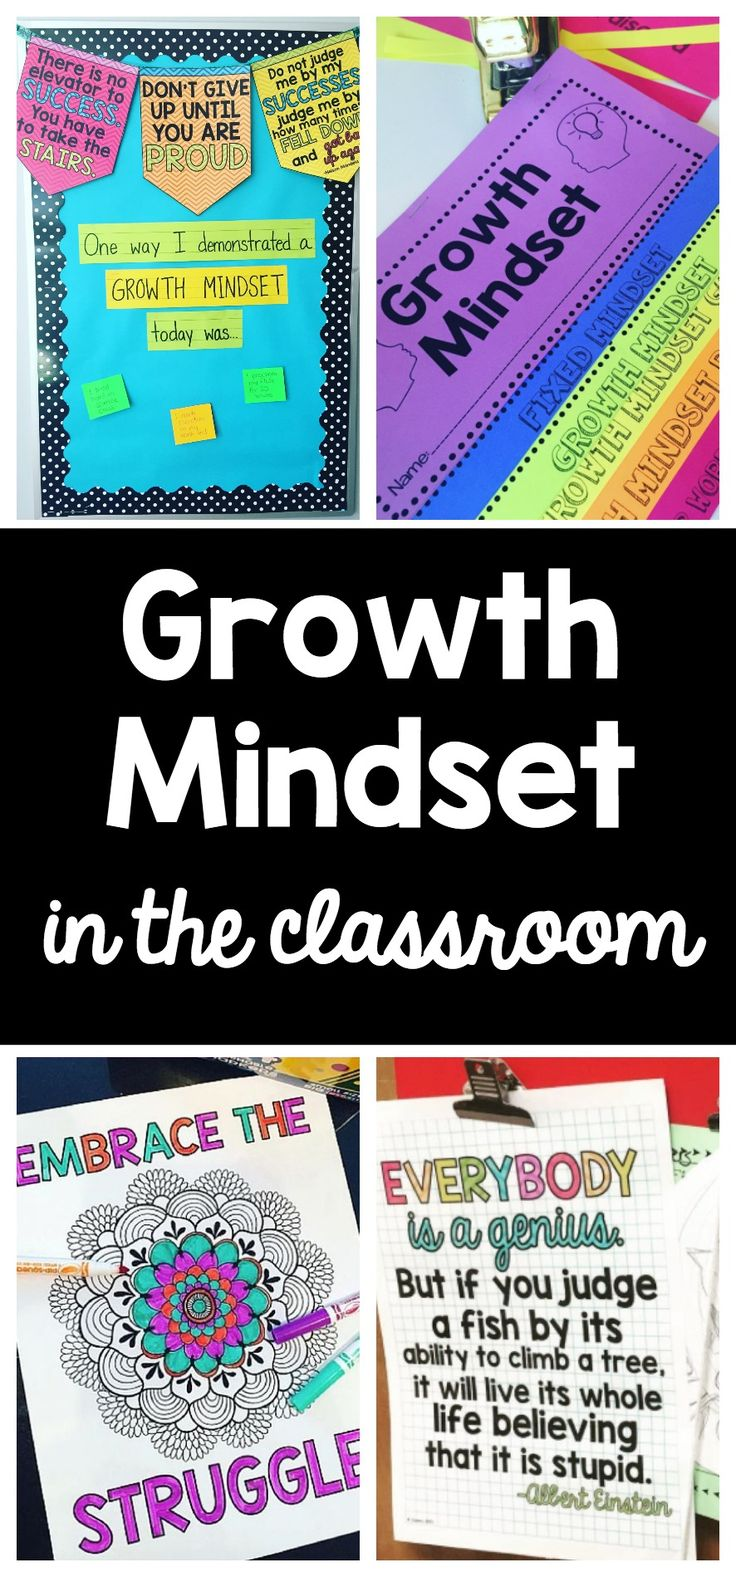 Growth Mindset Bundle | Growth Mindset Banner | Growth Mindset Posters | Growth Mindset Coloring Pages | Growth Mindset foldable flip book | Growth Mindset Task Cards | Growth Mindset Reflection Journal | Growth Mindset in the classroom